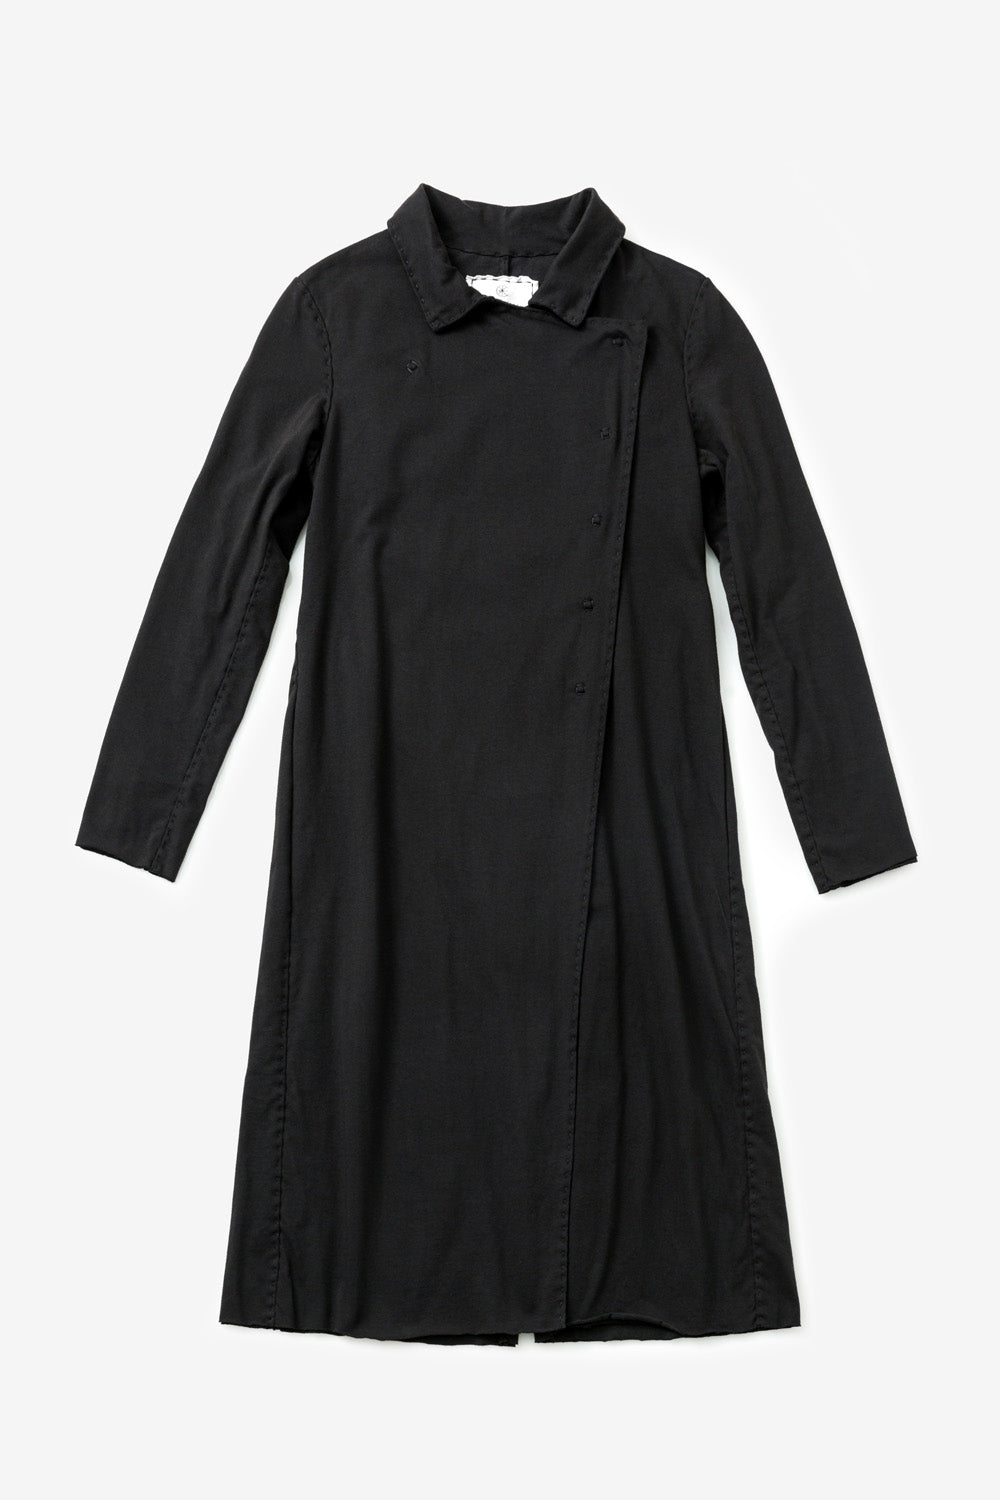 The School of Making The Asymmetrical Trench Kit Organic Cotton Trench Coat with Collar and Long Sleeves in Black